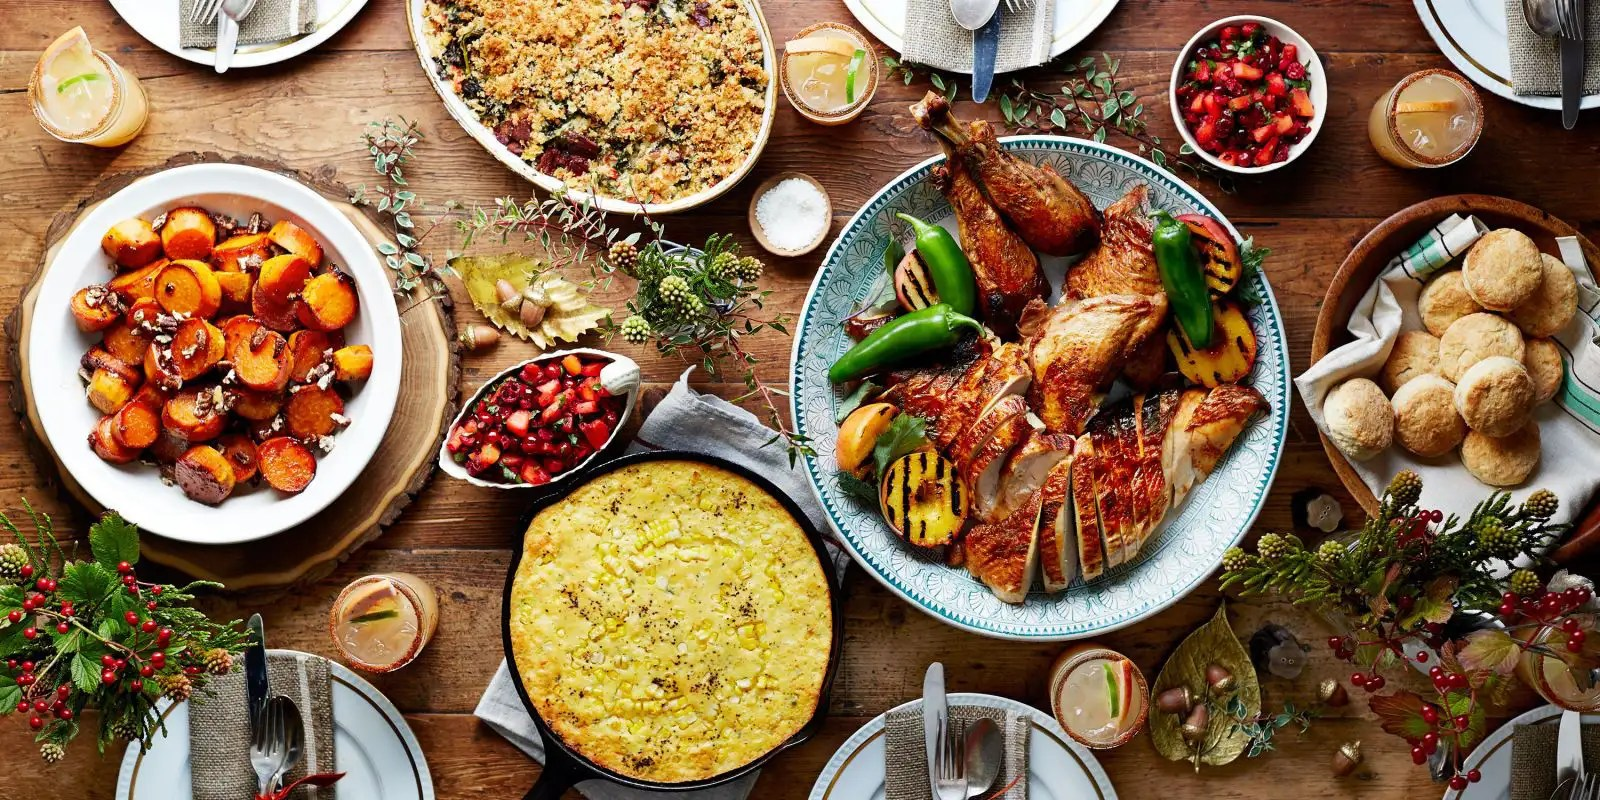 10 Restaurants Open On Thanksgiving If You Don't Want The Hassle Of Cooking - Society19